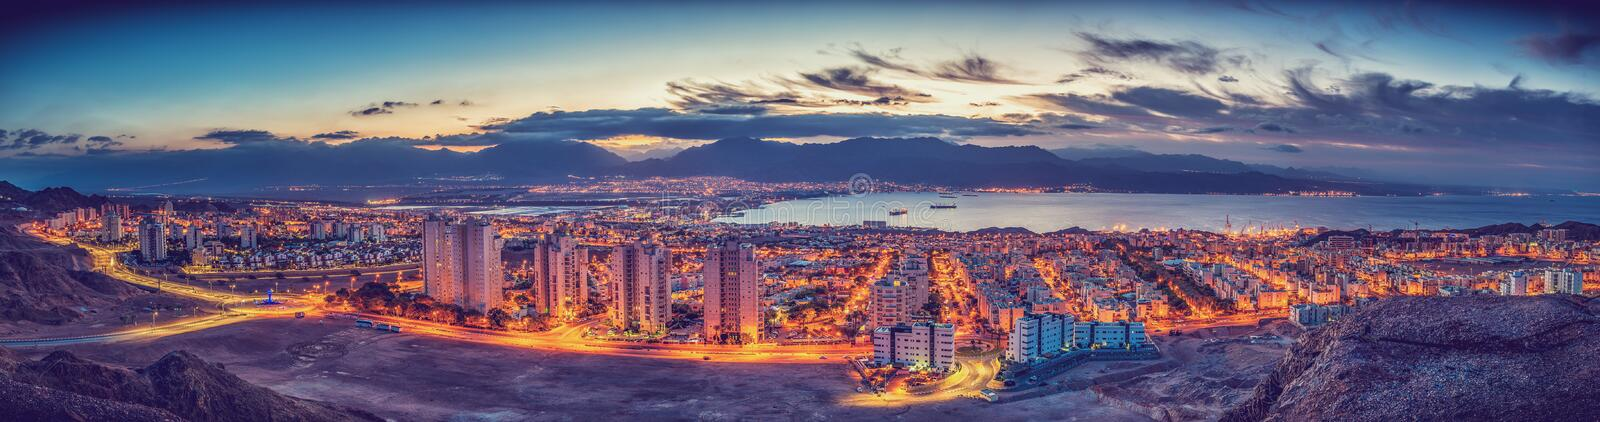 Nocturnal panorama. Eilat and Aqaba. Gulf of Aqaba, Red Sea. The nocturnal image was taken from the surrounding hills of Eilat city, Israel stock image